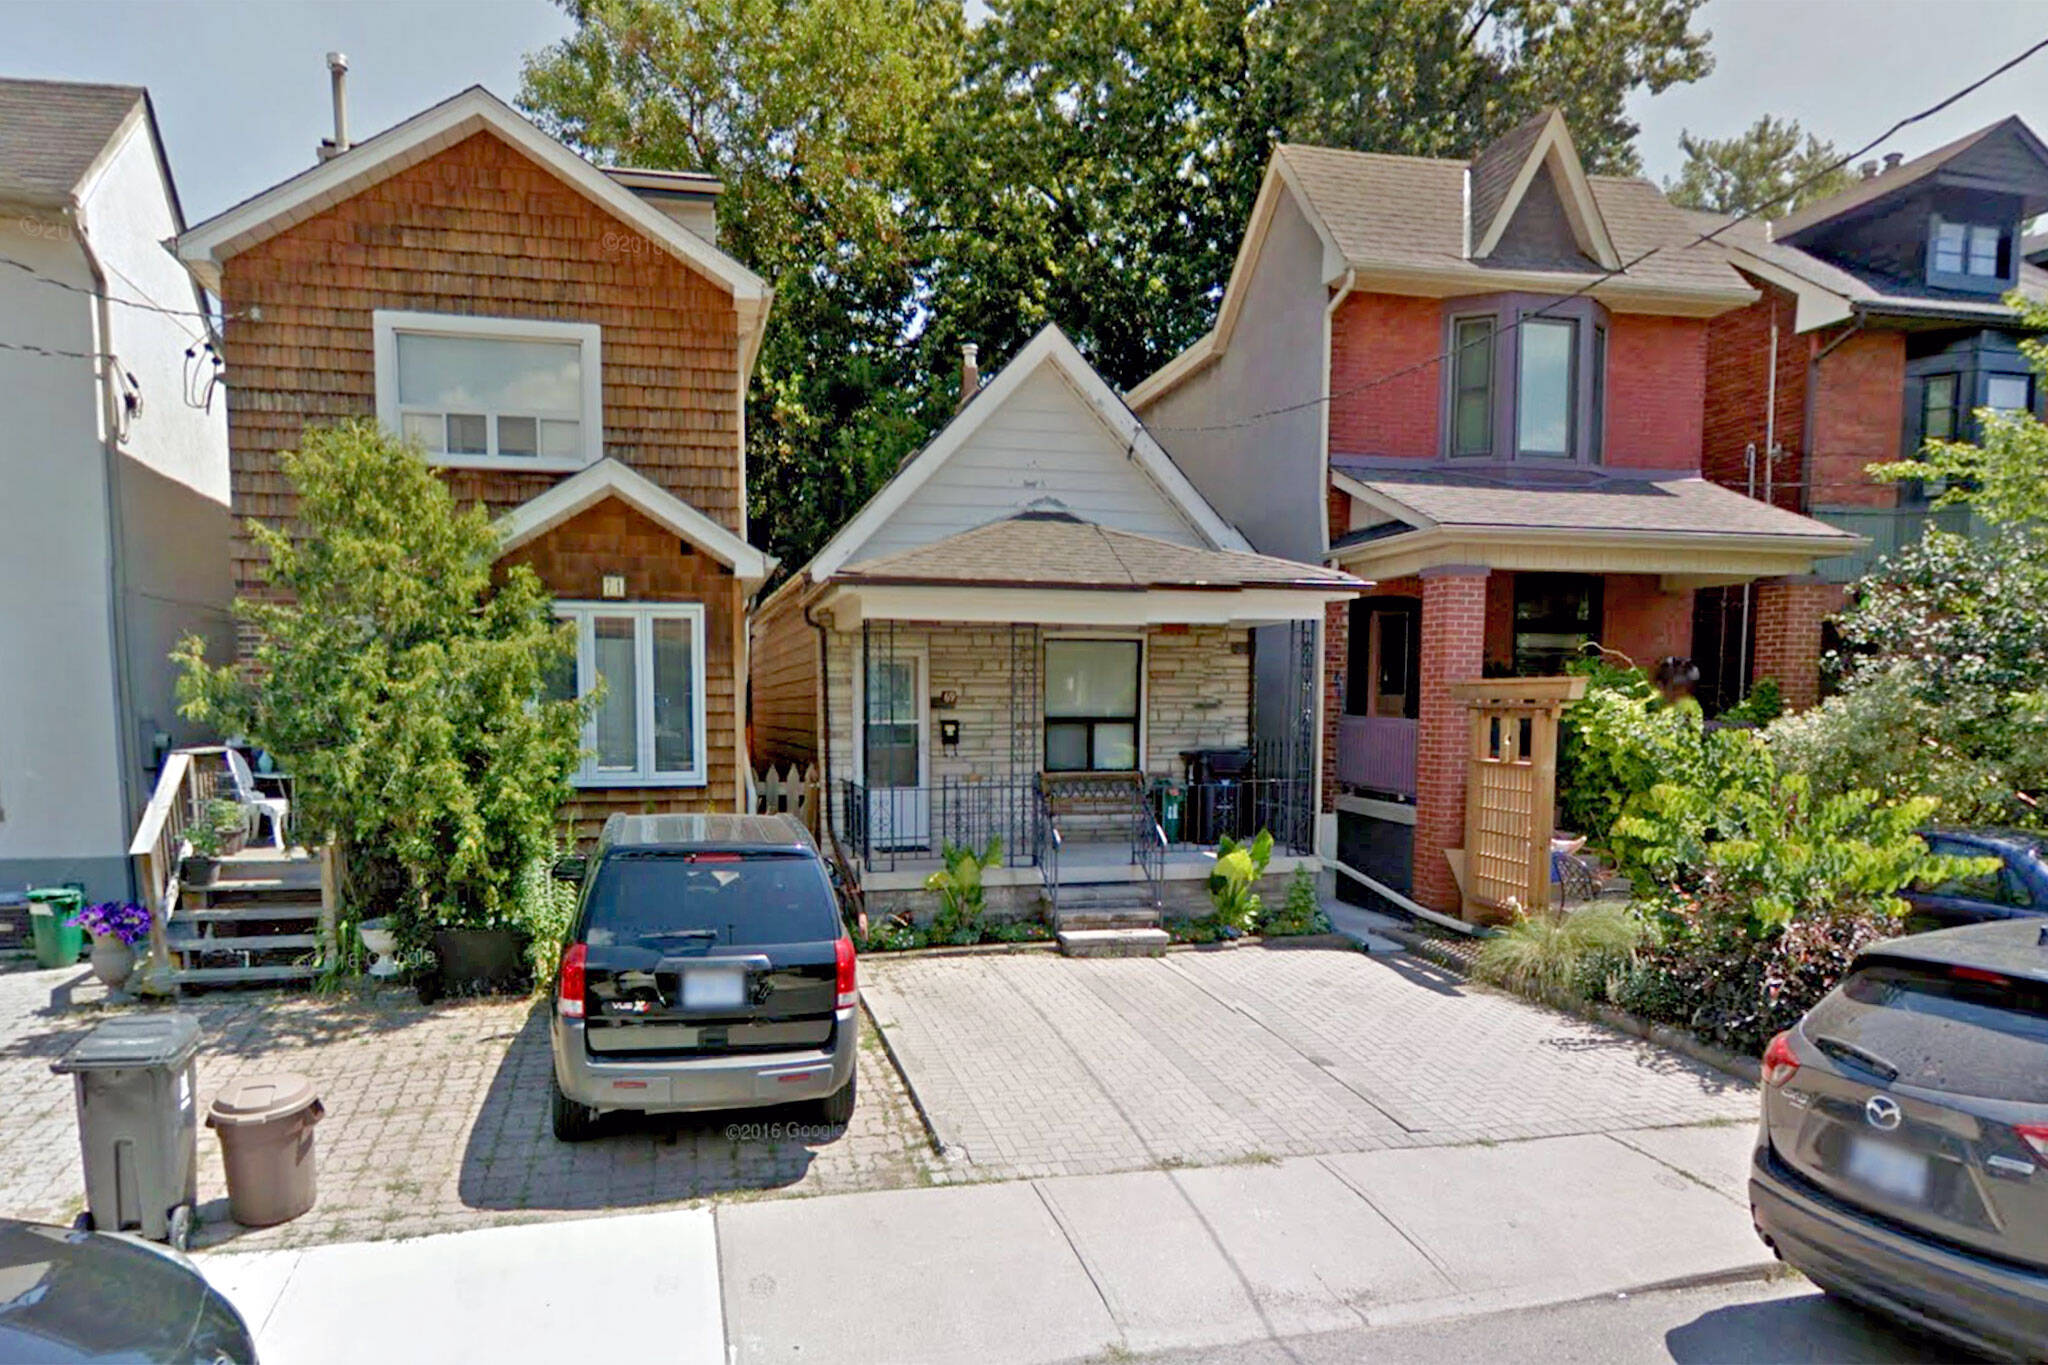 This tiny Toronto home just sold for $29 million